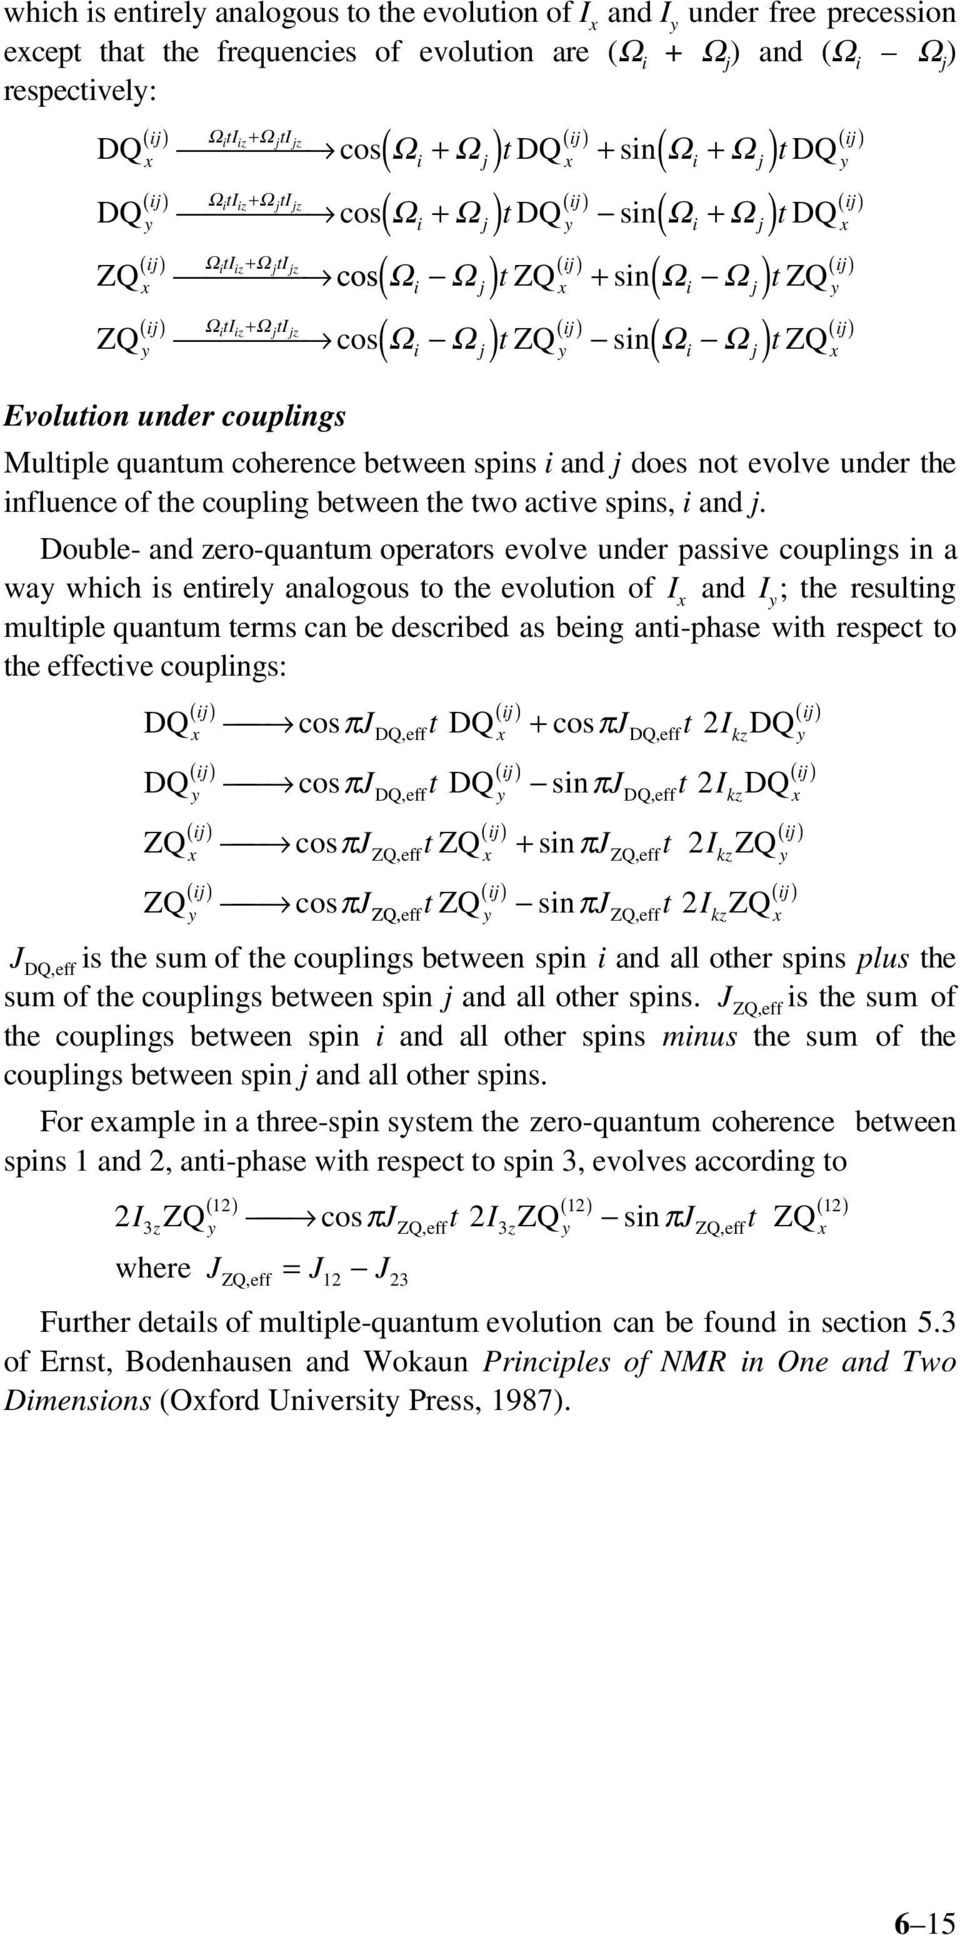 Ωjt j ( ij) ( ij) cos Ωi Ωj t sin Ωi Ωj t ( ) ( ) ZQ ZQ ZQ Evolution under couplings Multiple quantum coherence between spins i and j does not evolve under the influence of the coupling between the